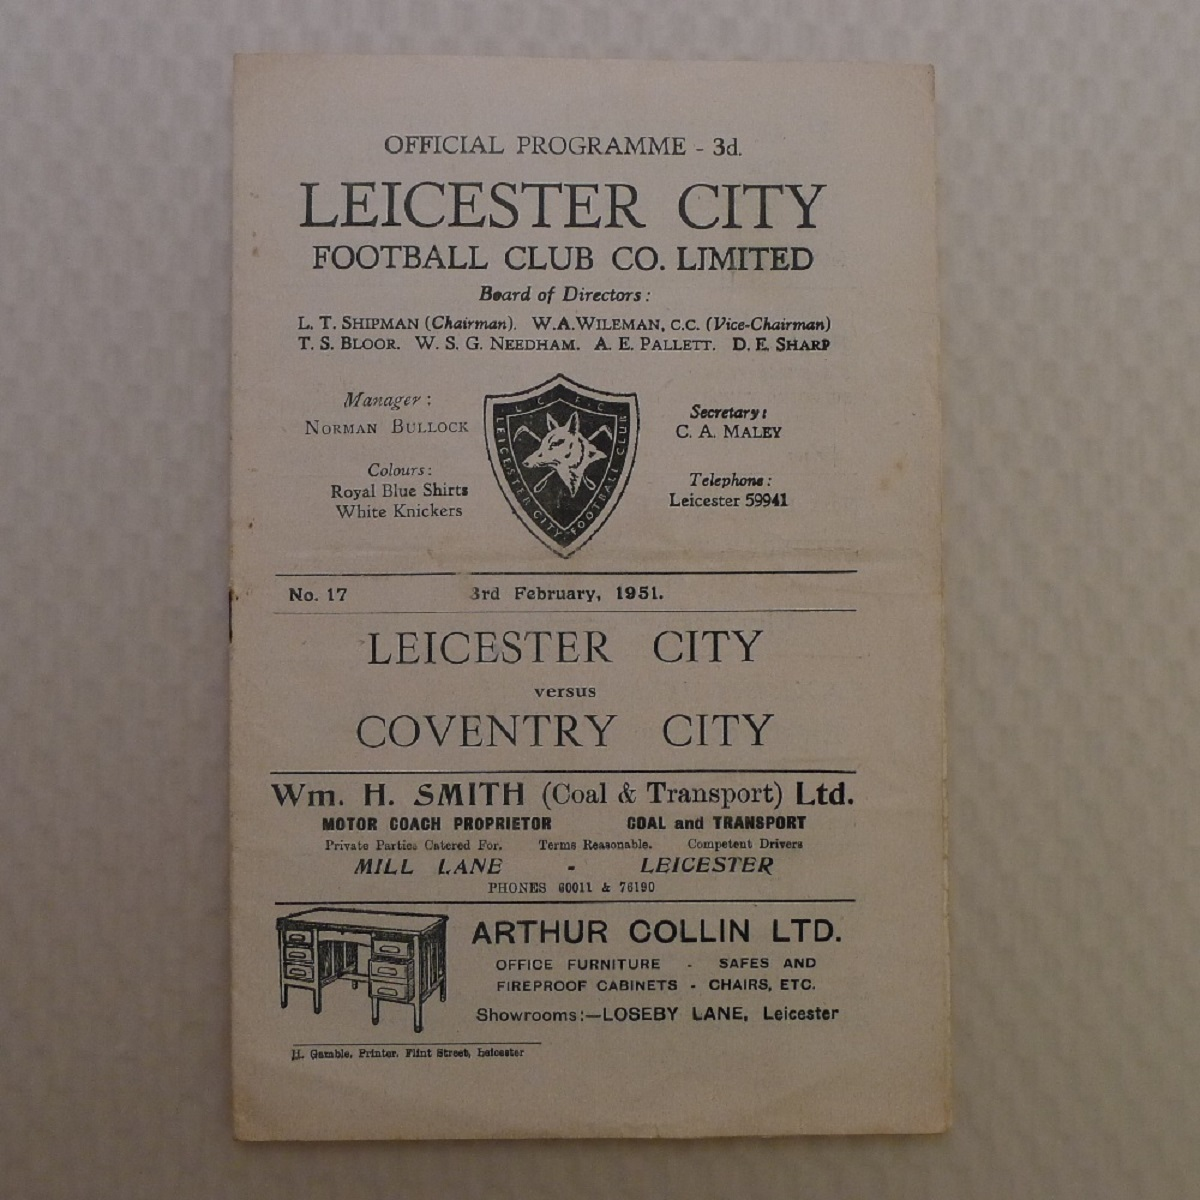 Vintage Football Programmes. 1 x Leicester City v Coventry City February 3rd, 1951, football